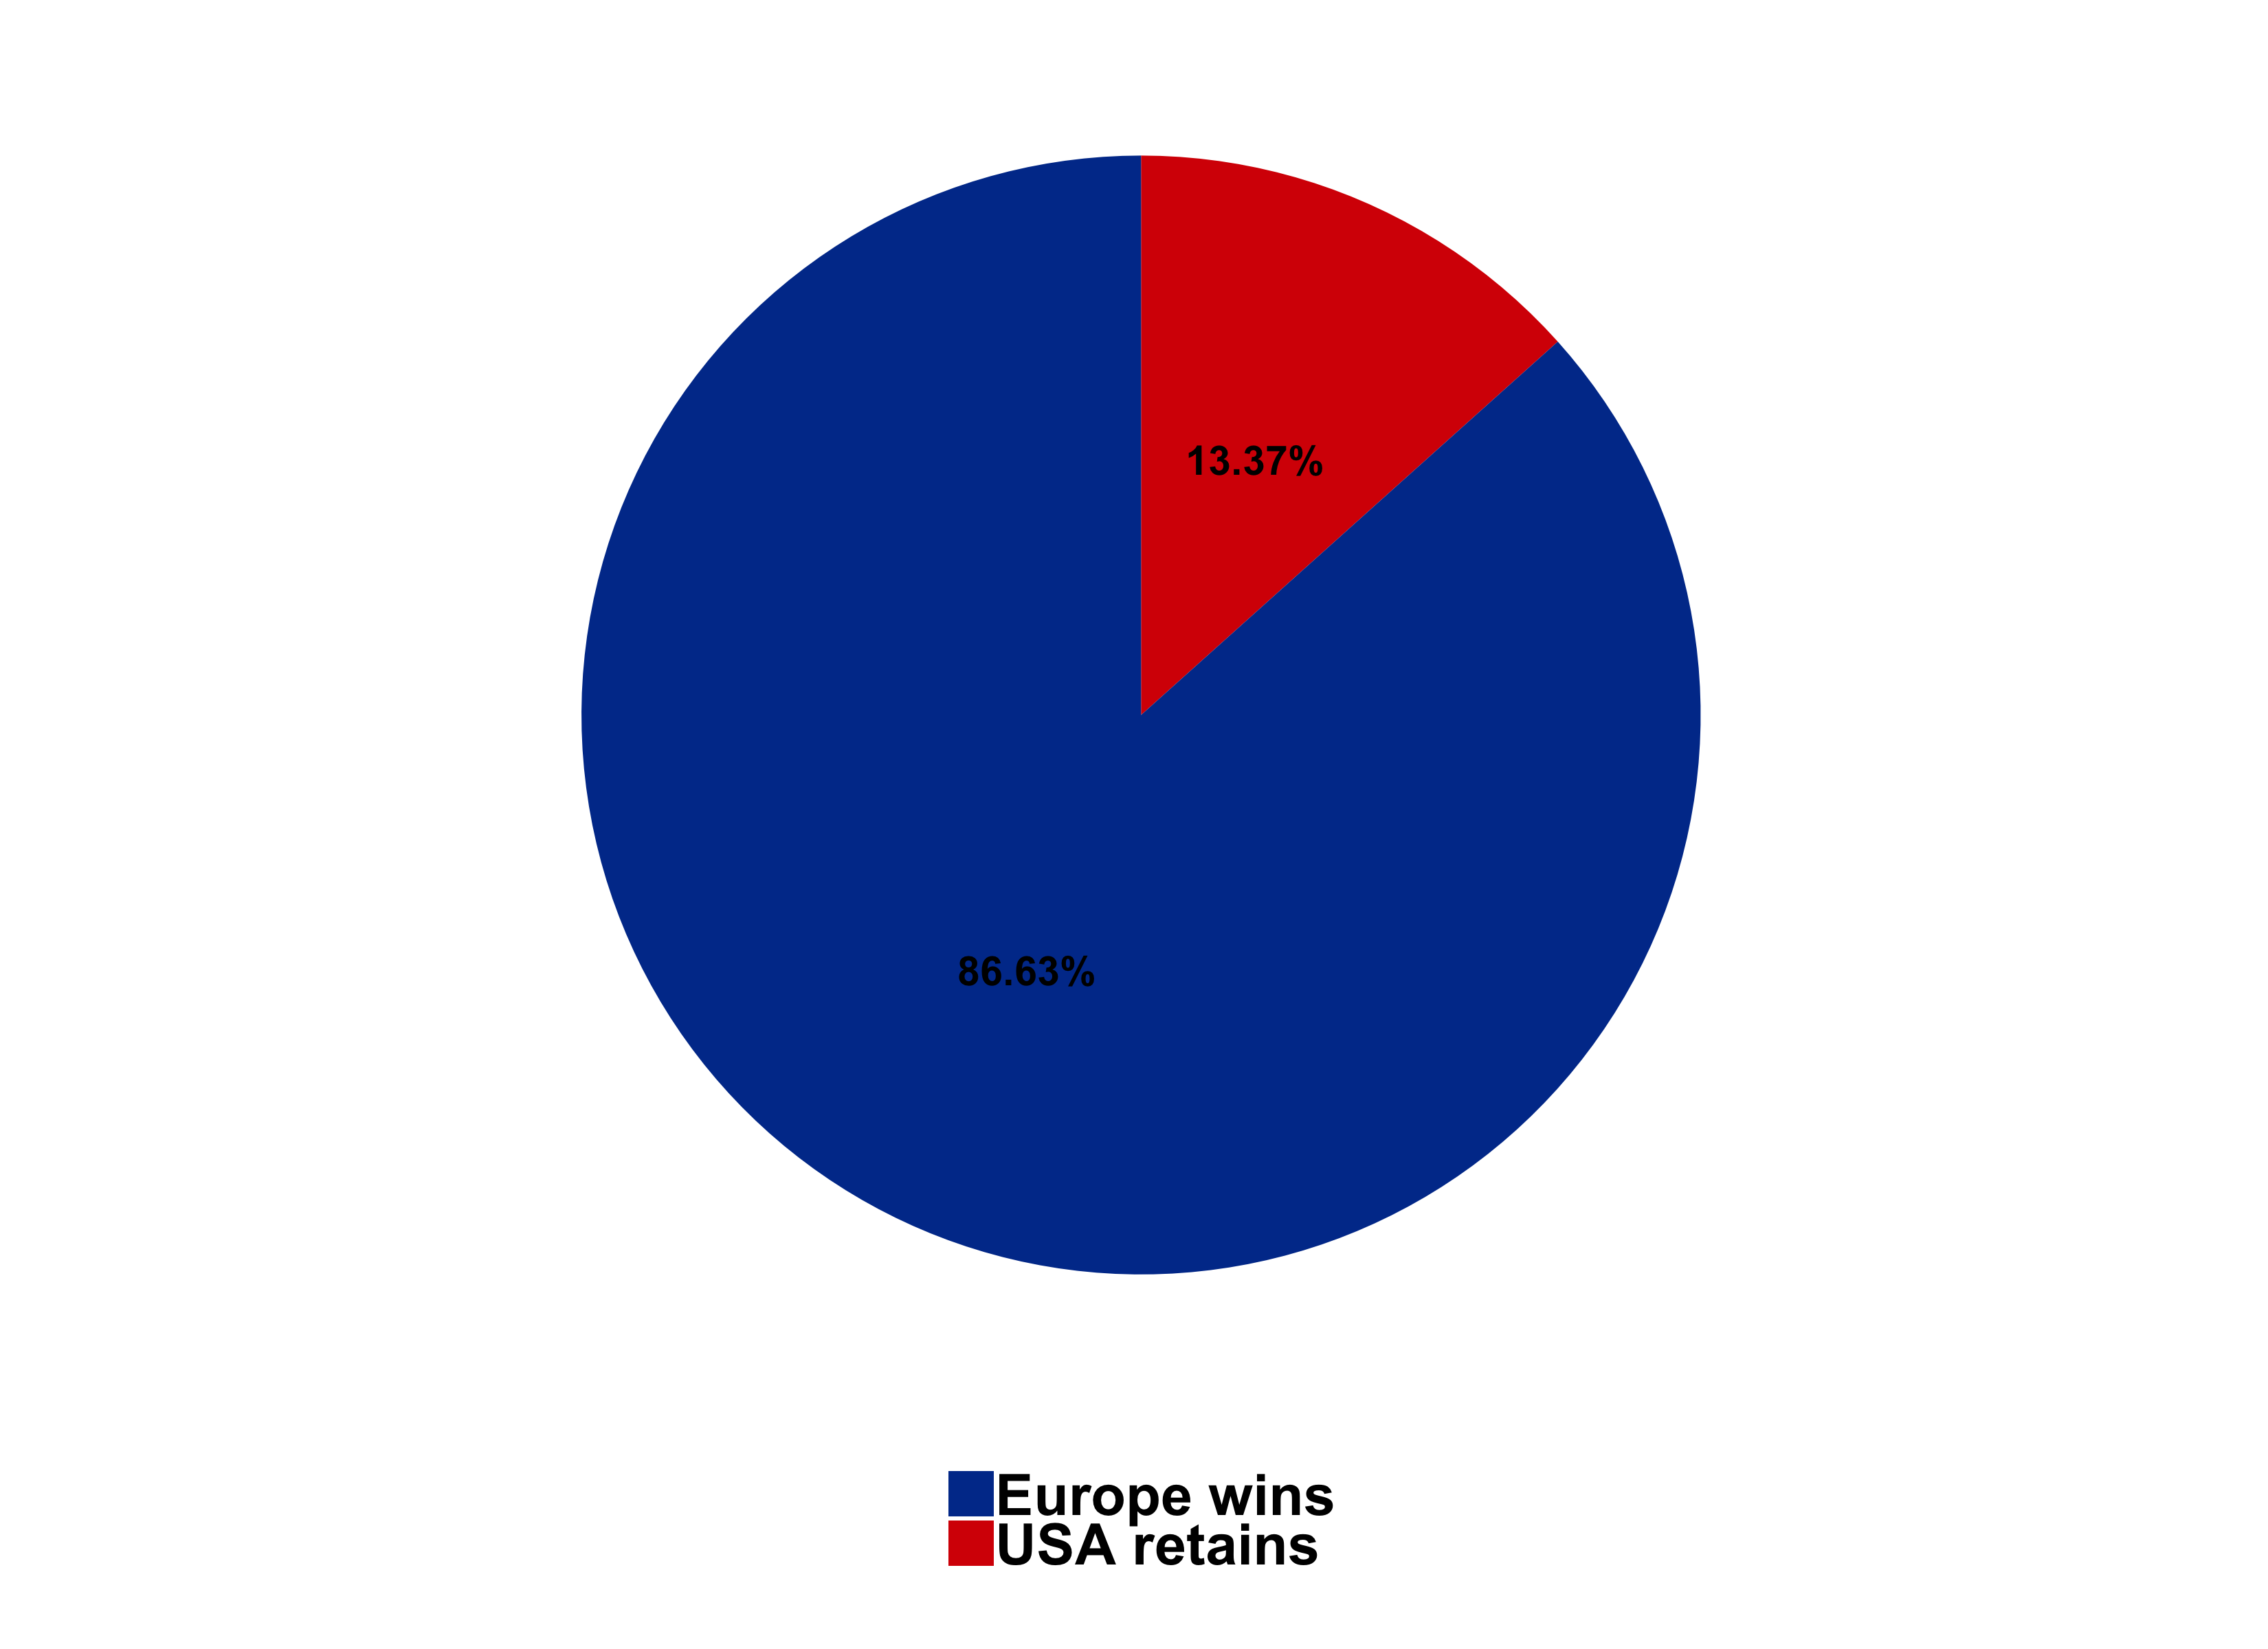 Probability of Victory for Europe and the USA before the singles